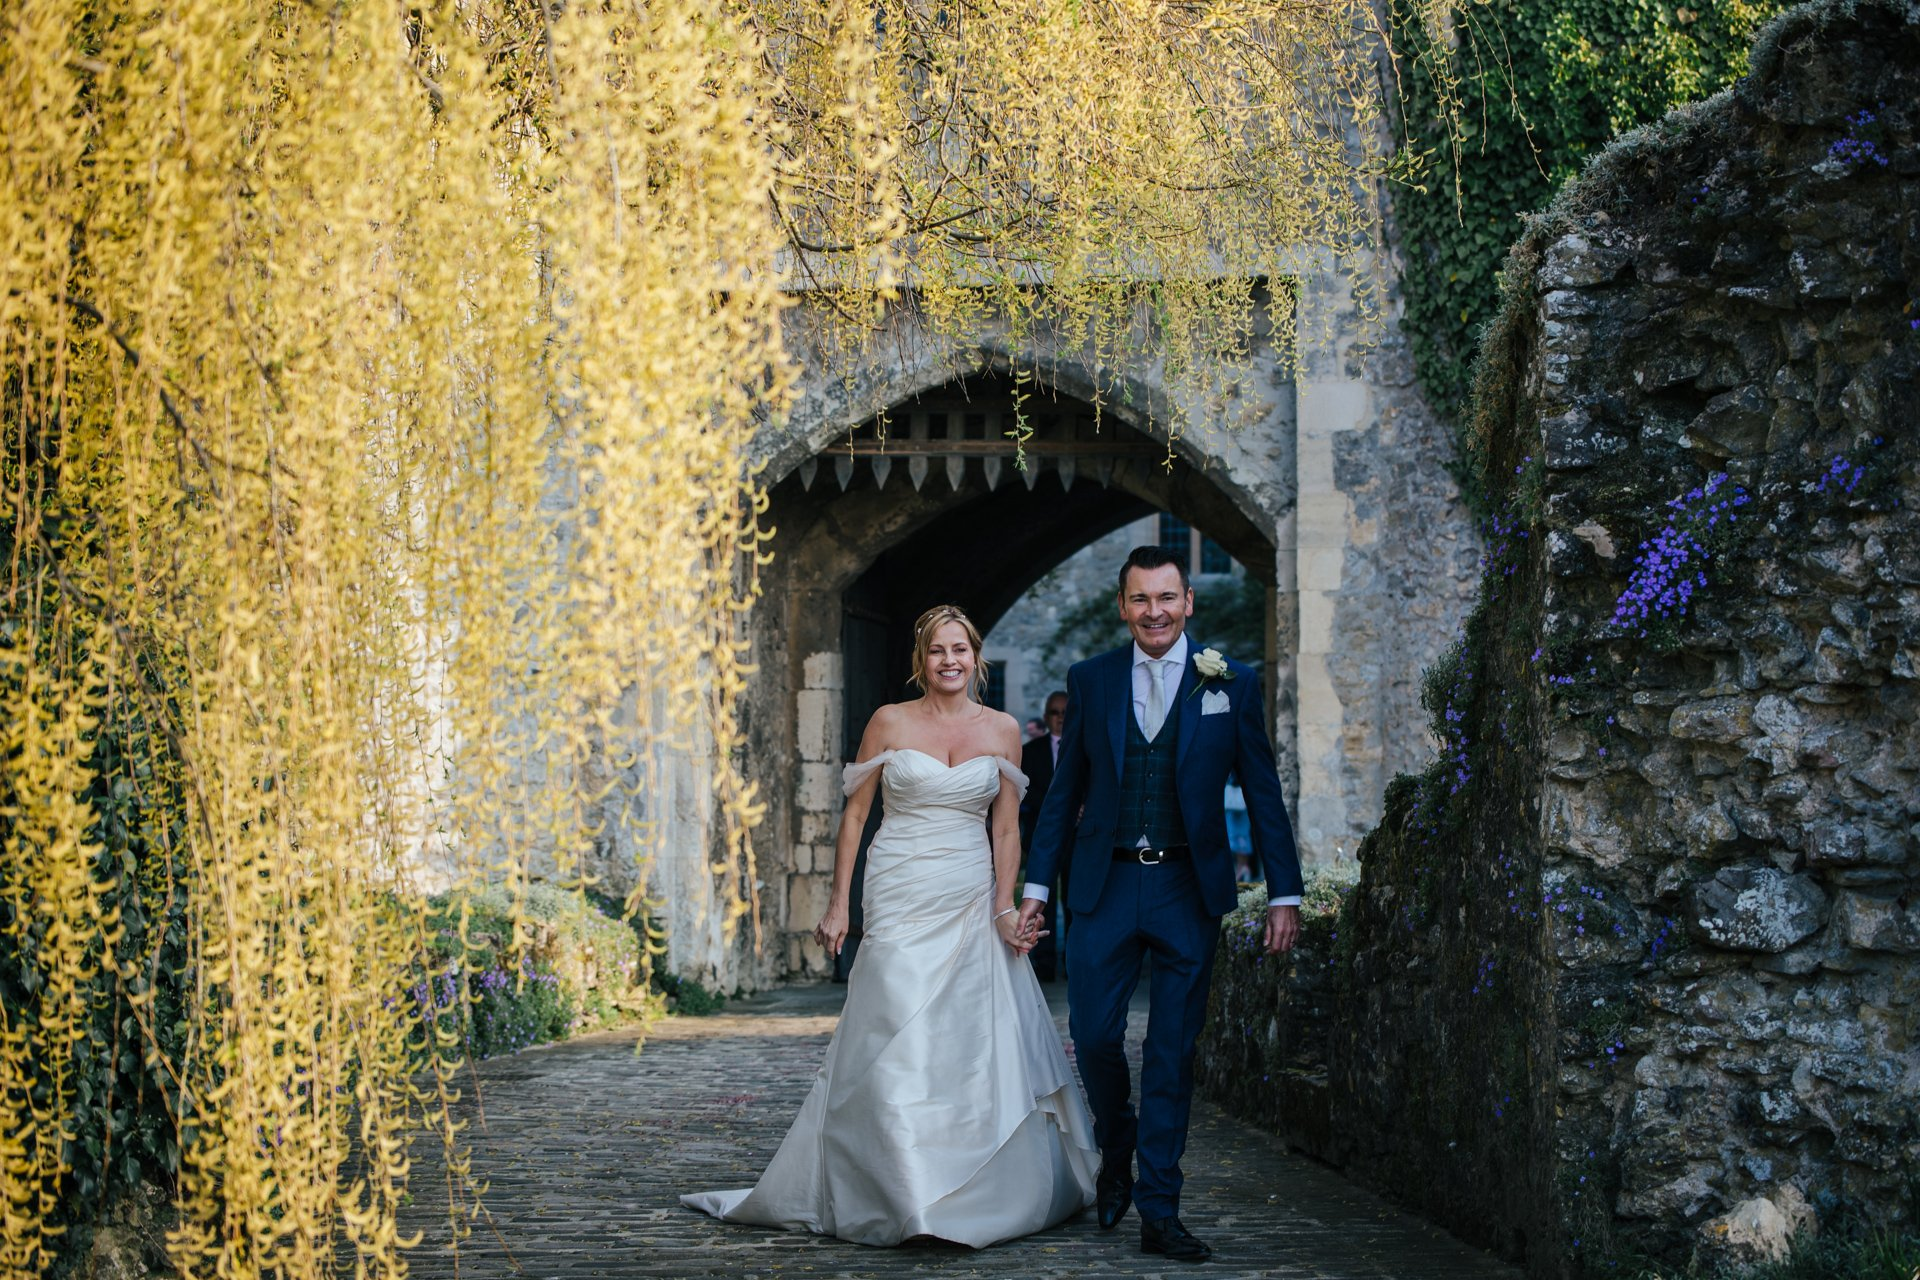 Stunning Kent Wedding at the beautiful Allington Castle